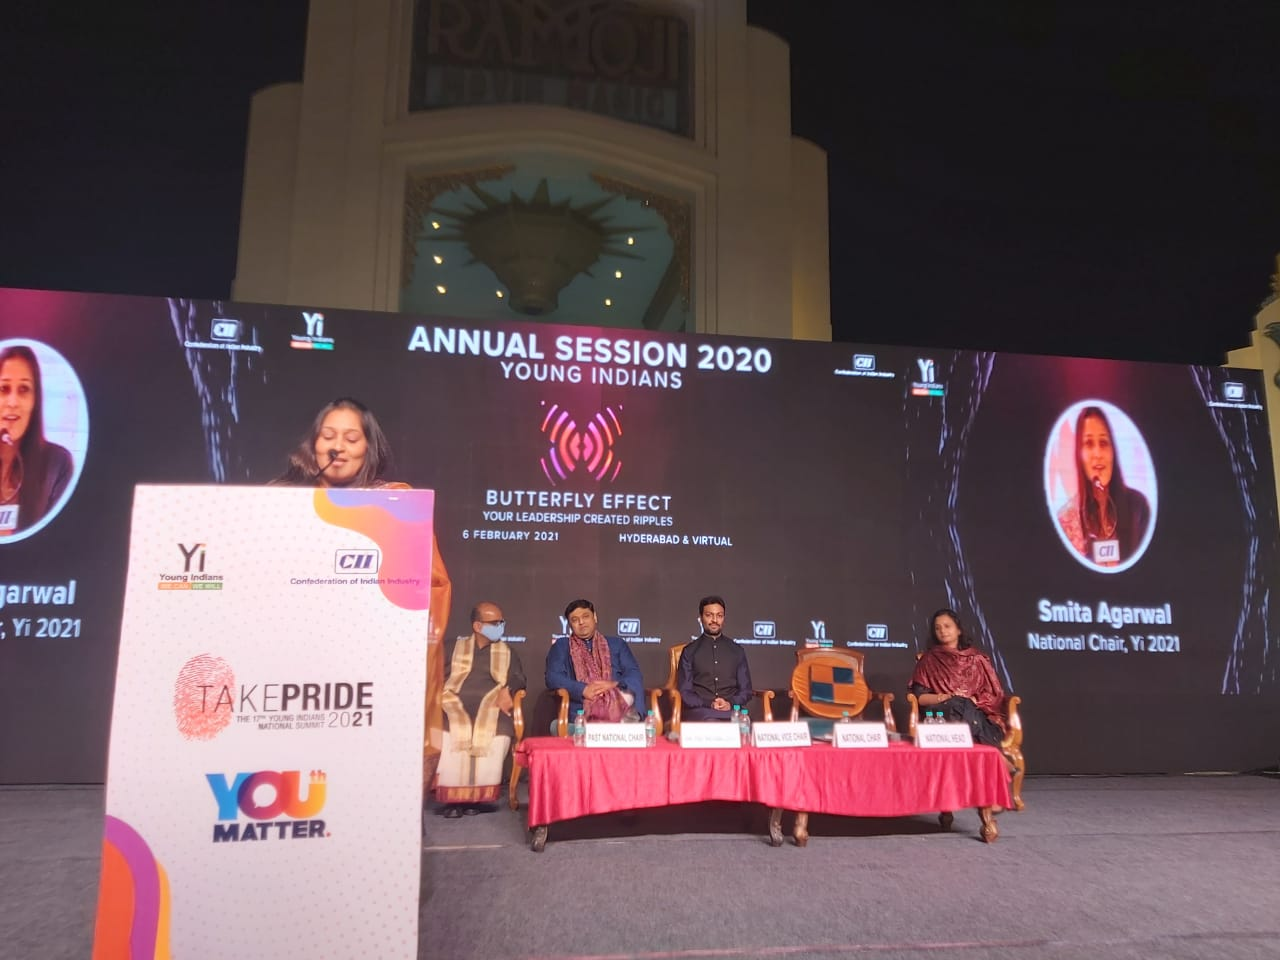 Young Indians Annual summit 2021 at Ramoji film city, Hyderabad